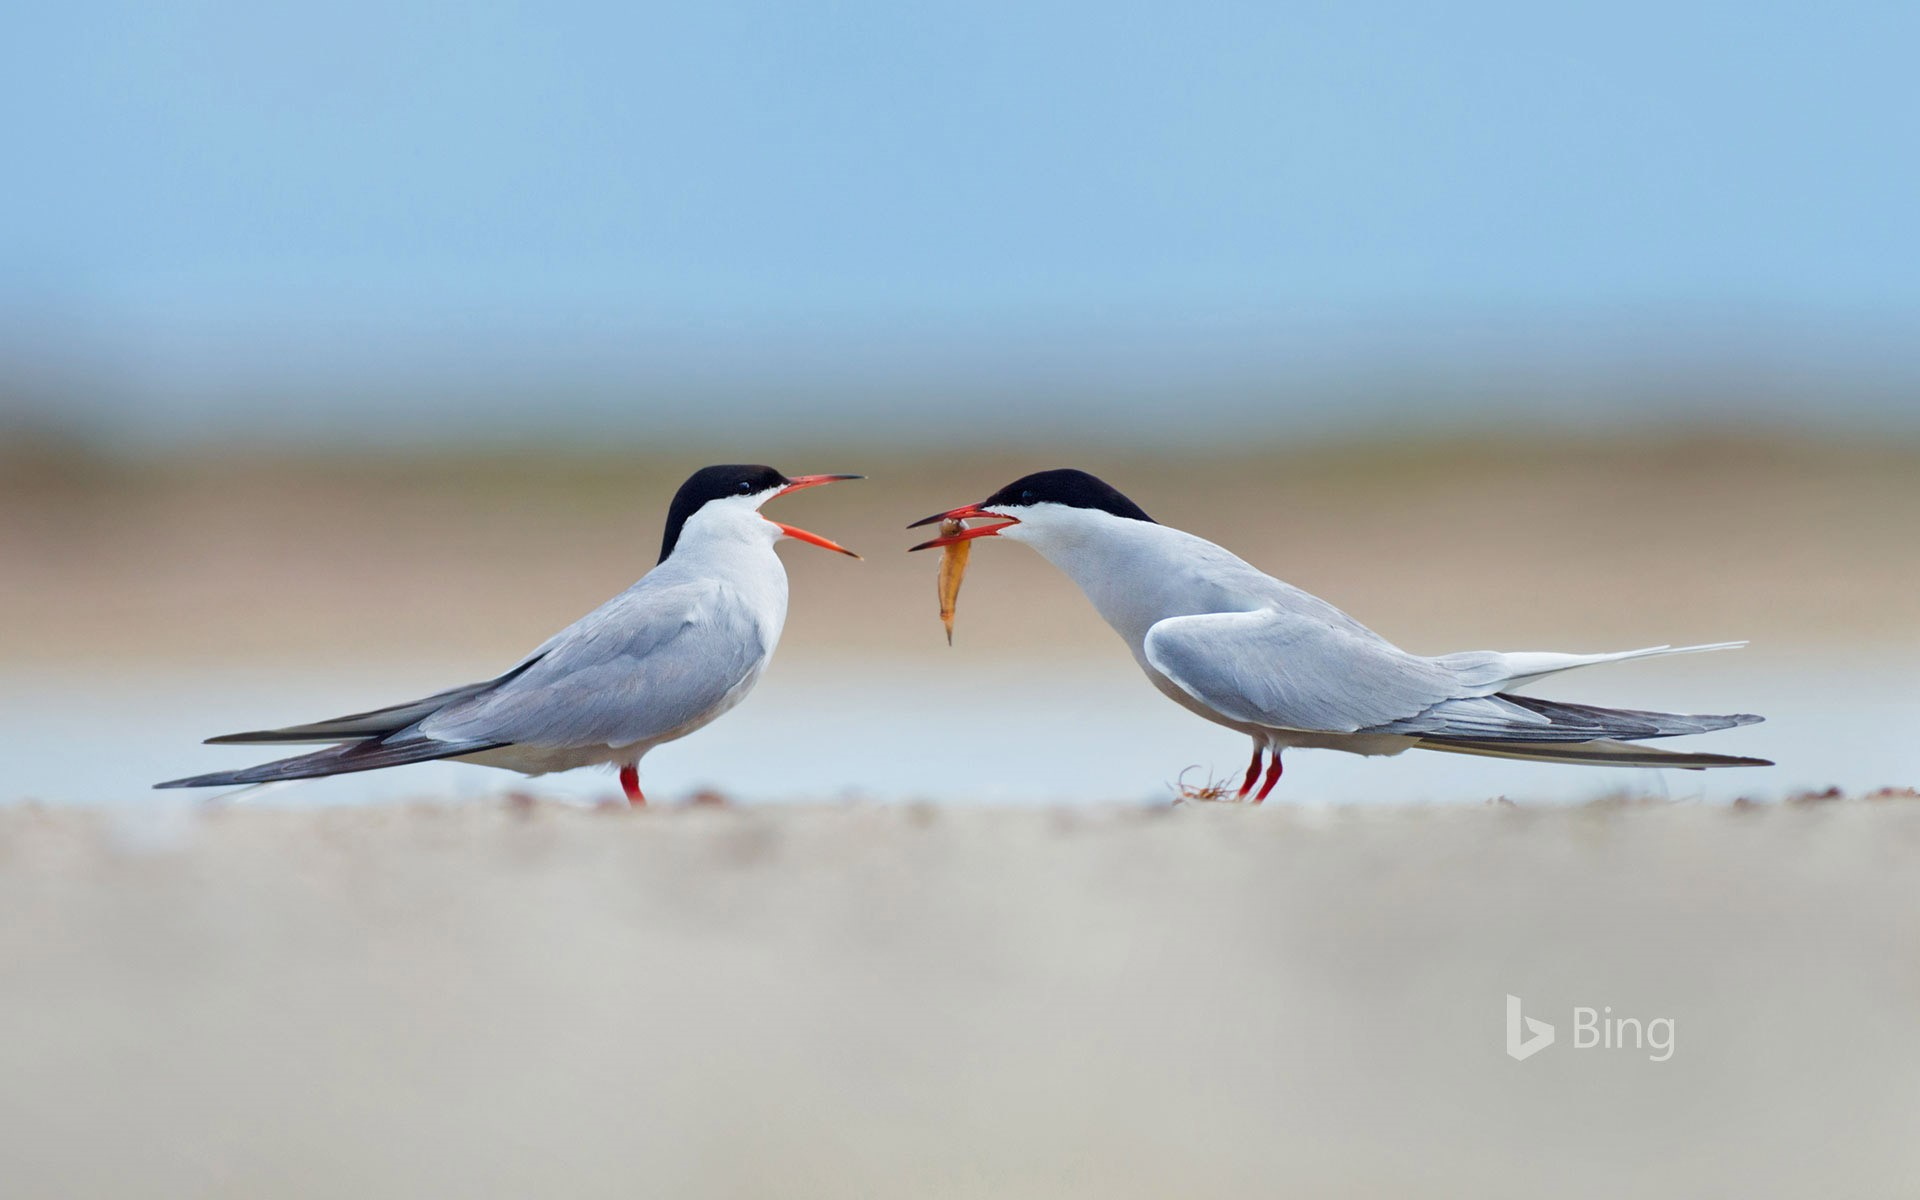 Common terns sharing a small fish